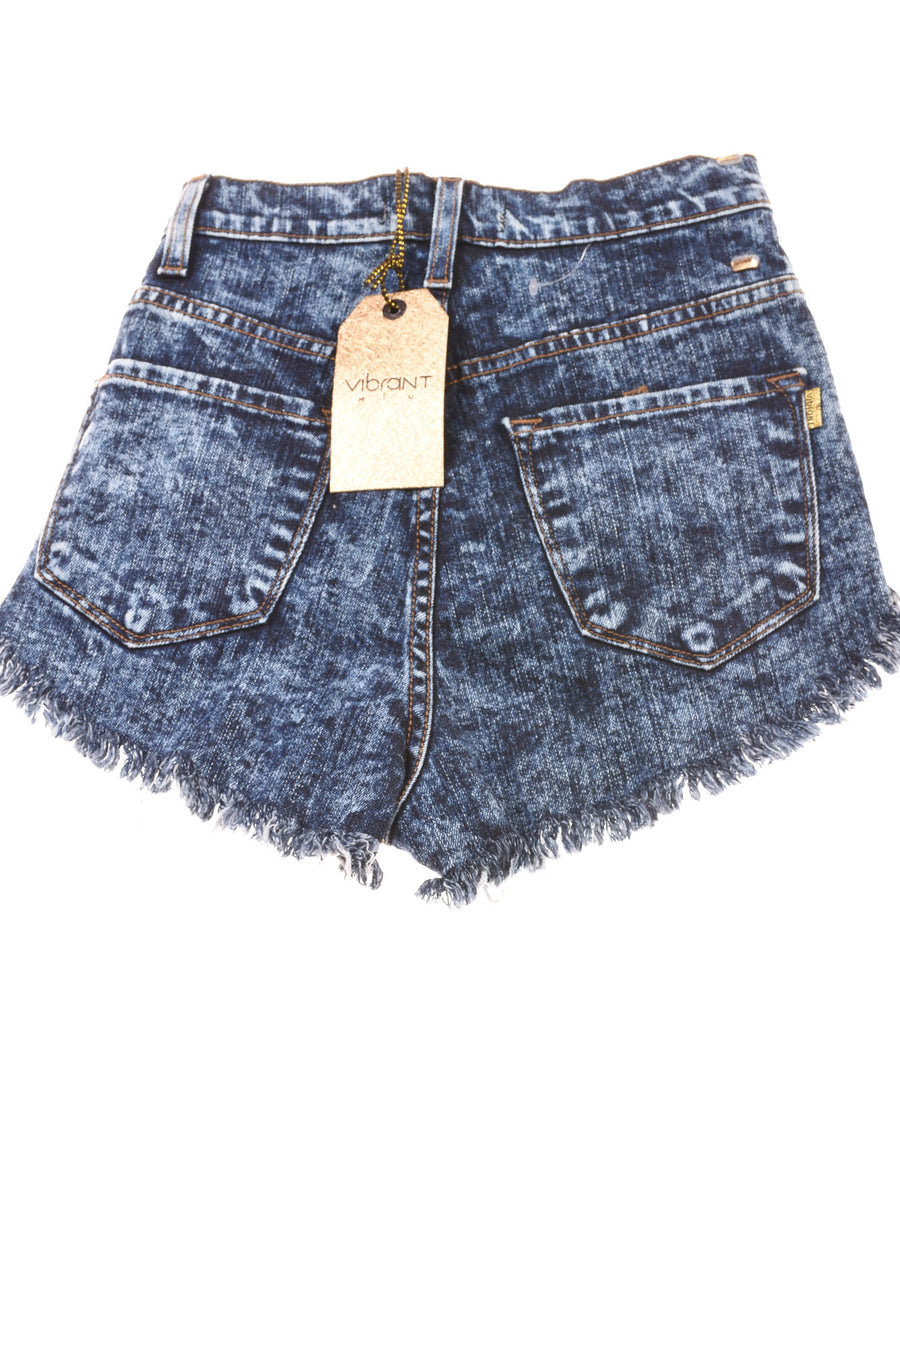 NEW Vibrant Women's Shorts Small Blue